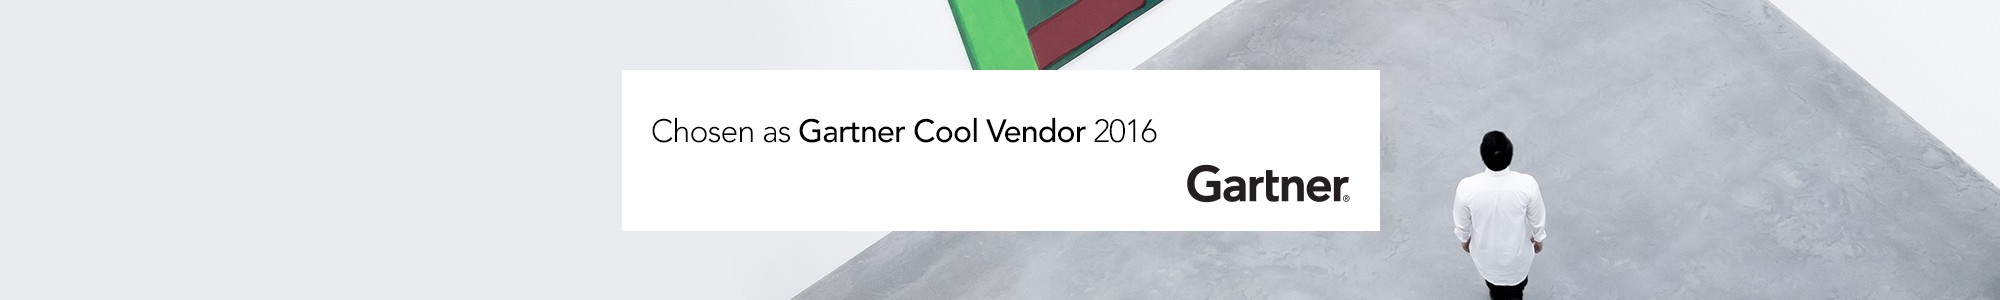 Kooomo named as a 2016 cool vendor by Gartner